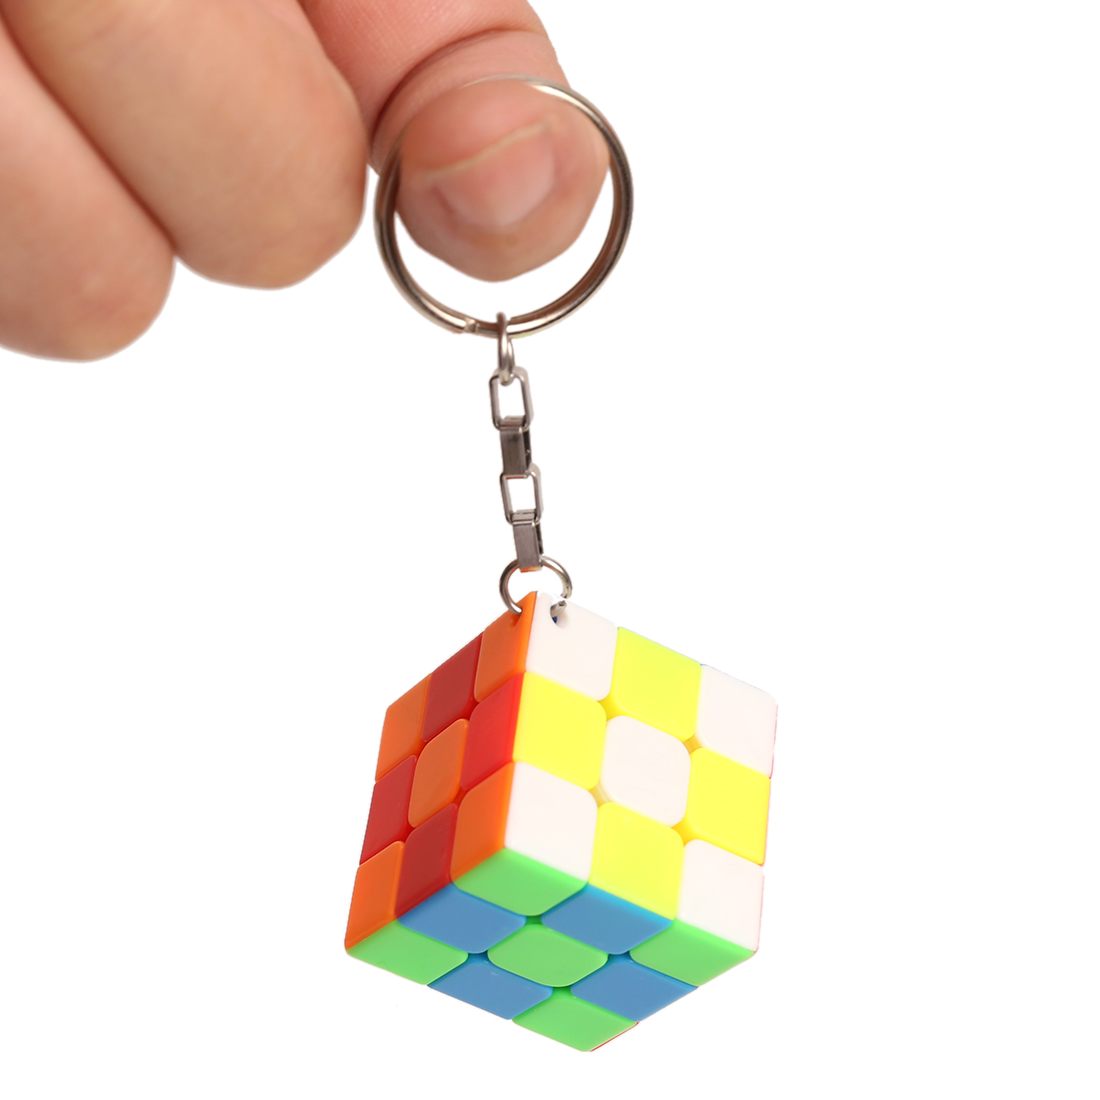 Z Key Chain Mini 3x3 Magic Cube Creative Cube Hang Decorations Colorful